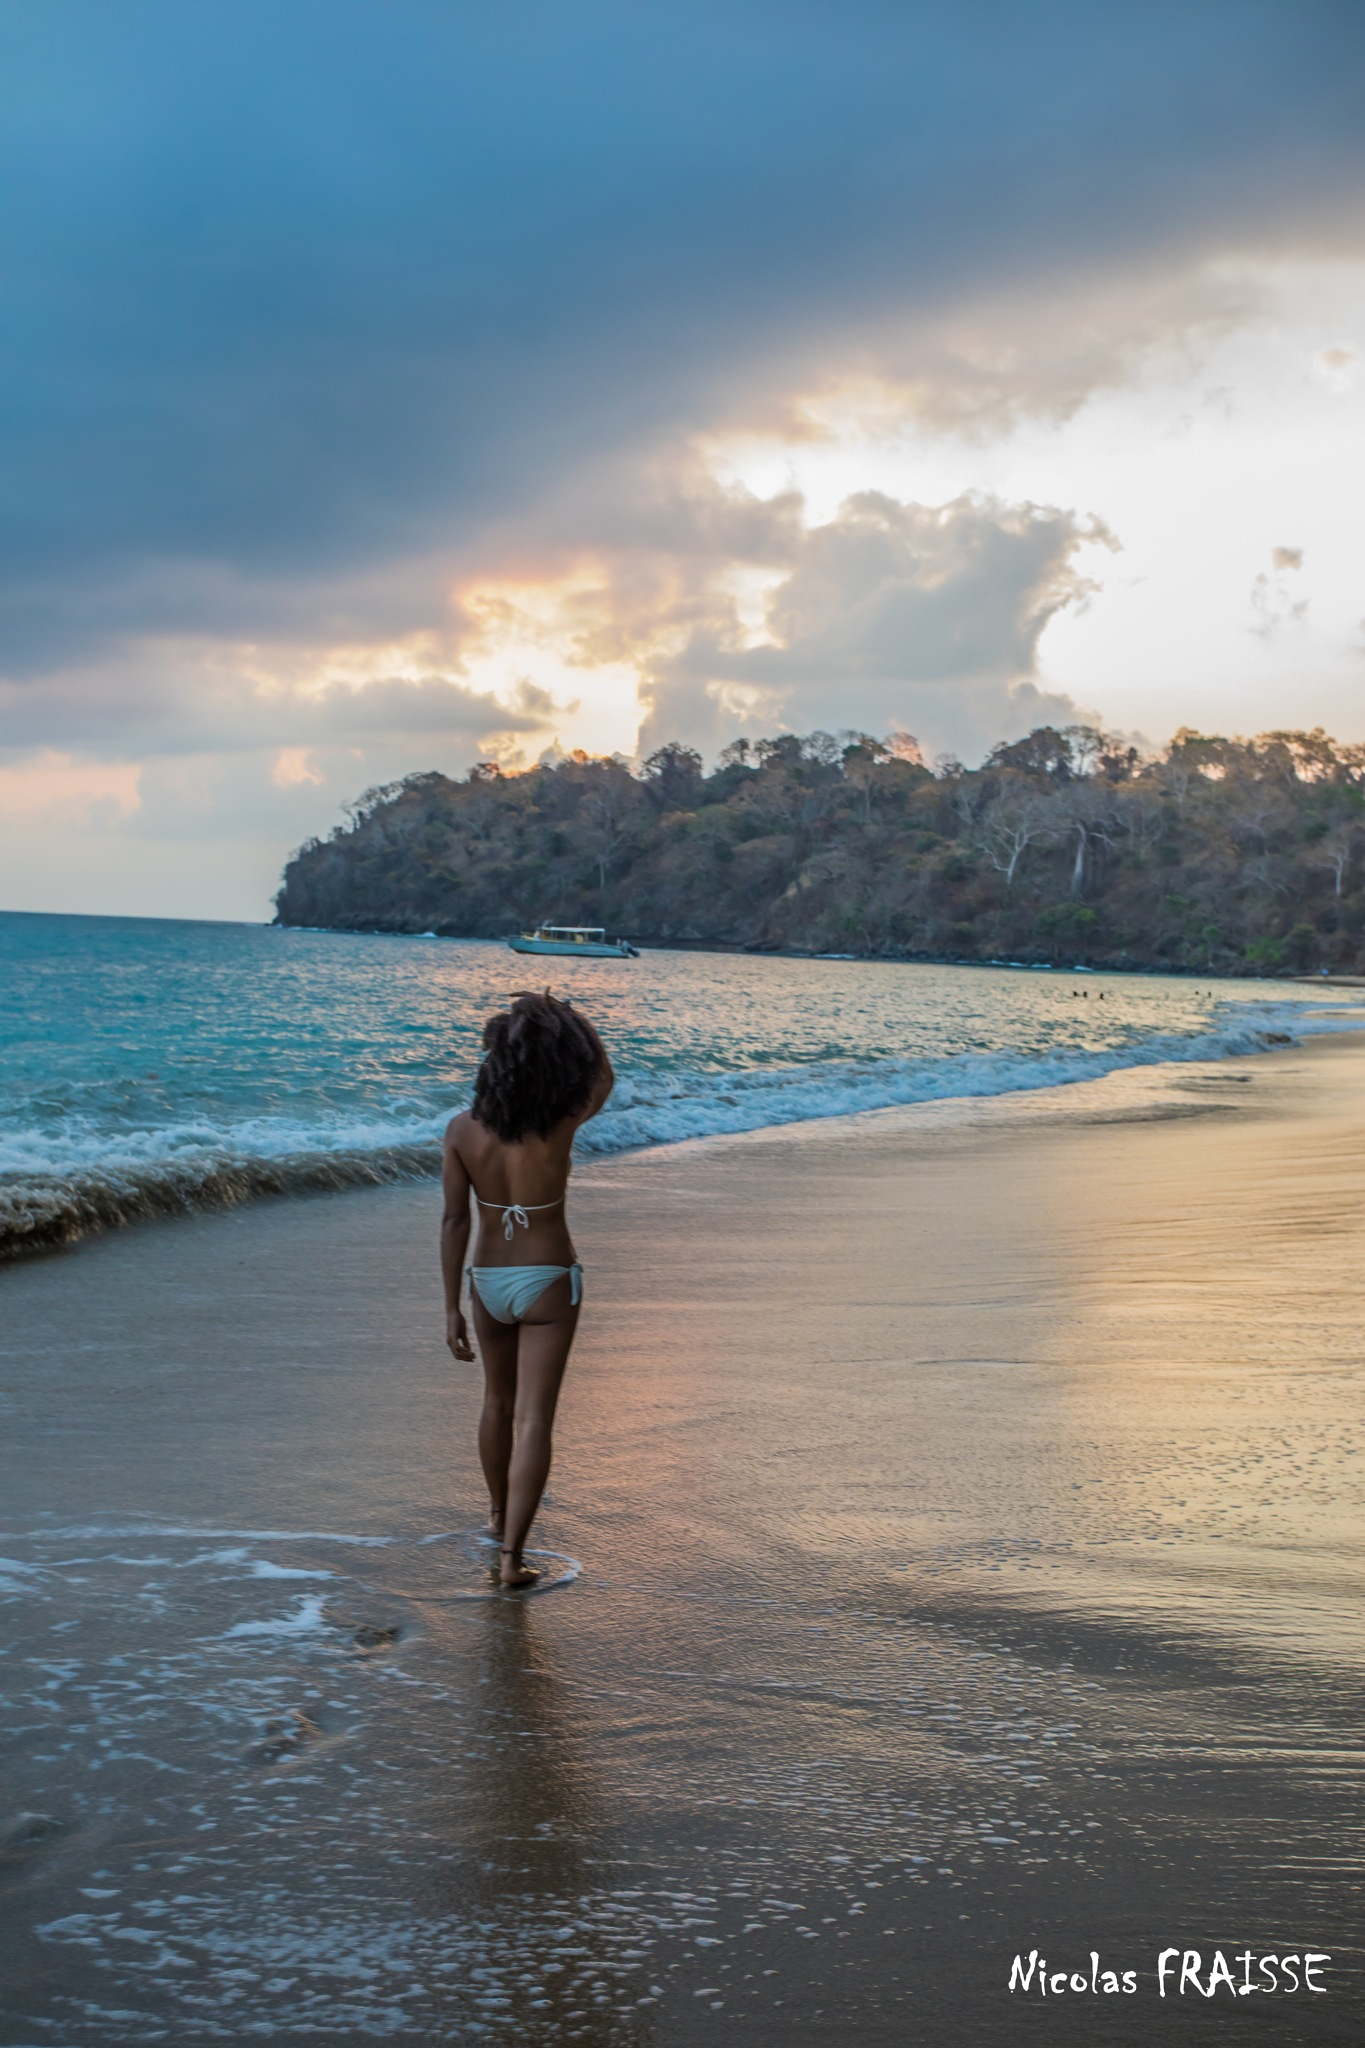 A charming girl at the beach by Nicolas F.